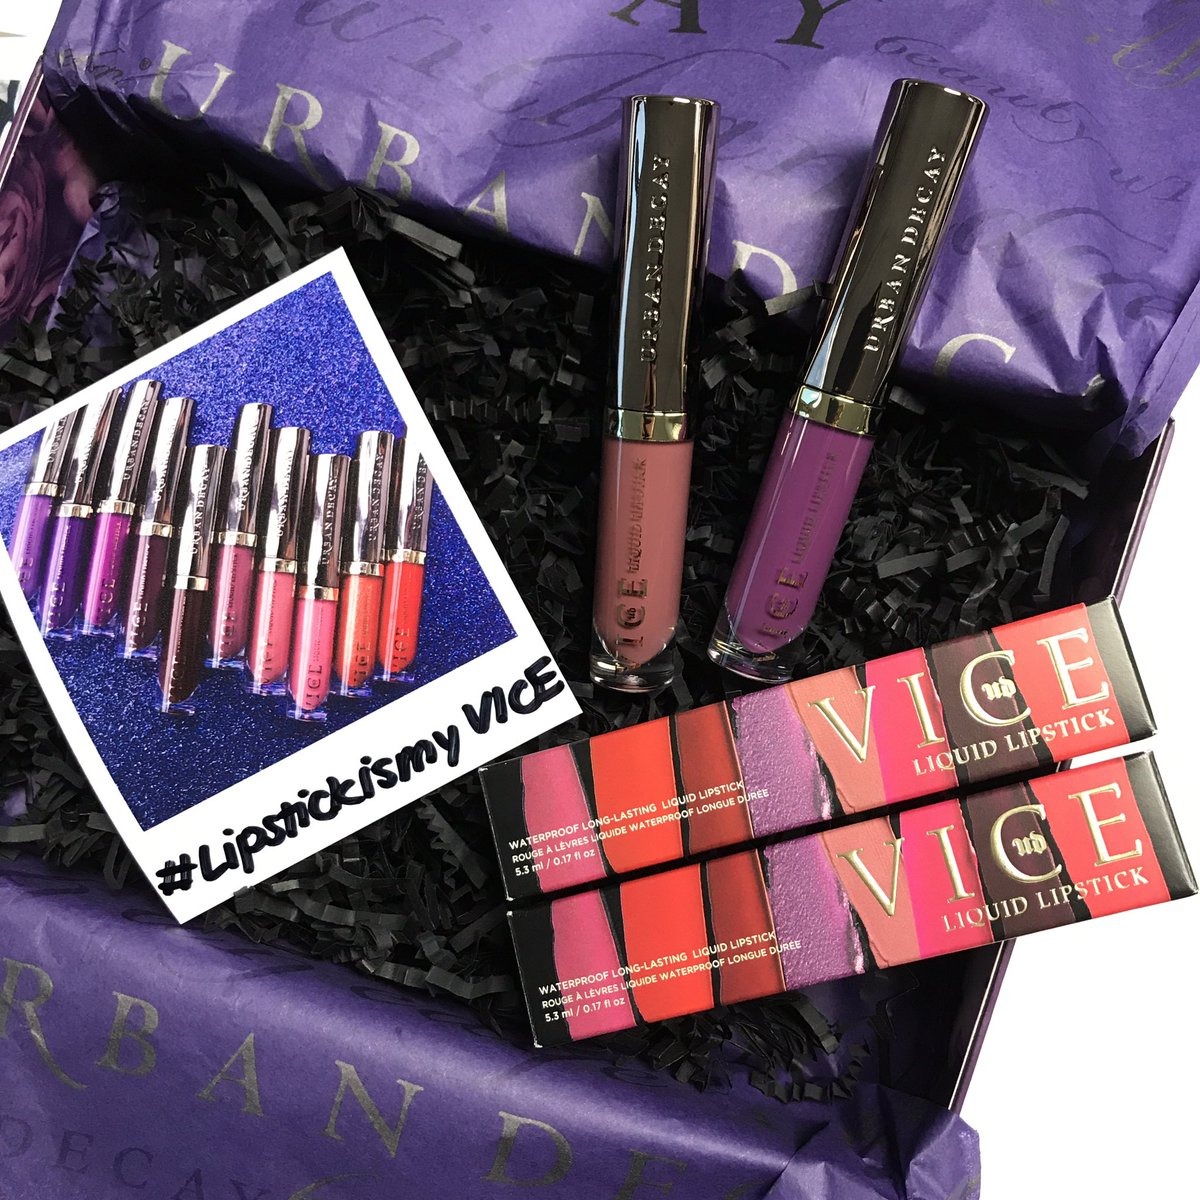 Thanks #UrbanDecaySA  you sure know how to make a bleh Monday brighter! Can&#39;t wait to try out these liquid lipsticks #LipstickismyVICE  <br>http://pic.twitter.com/2oD6z0tKcY